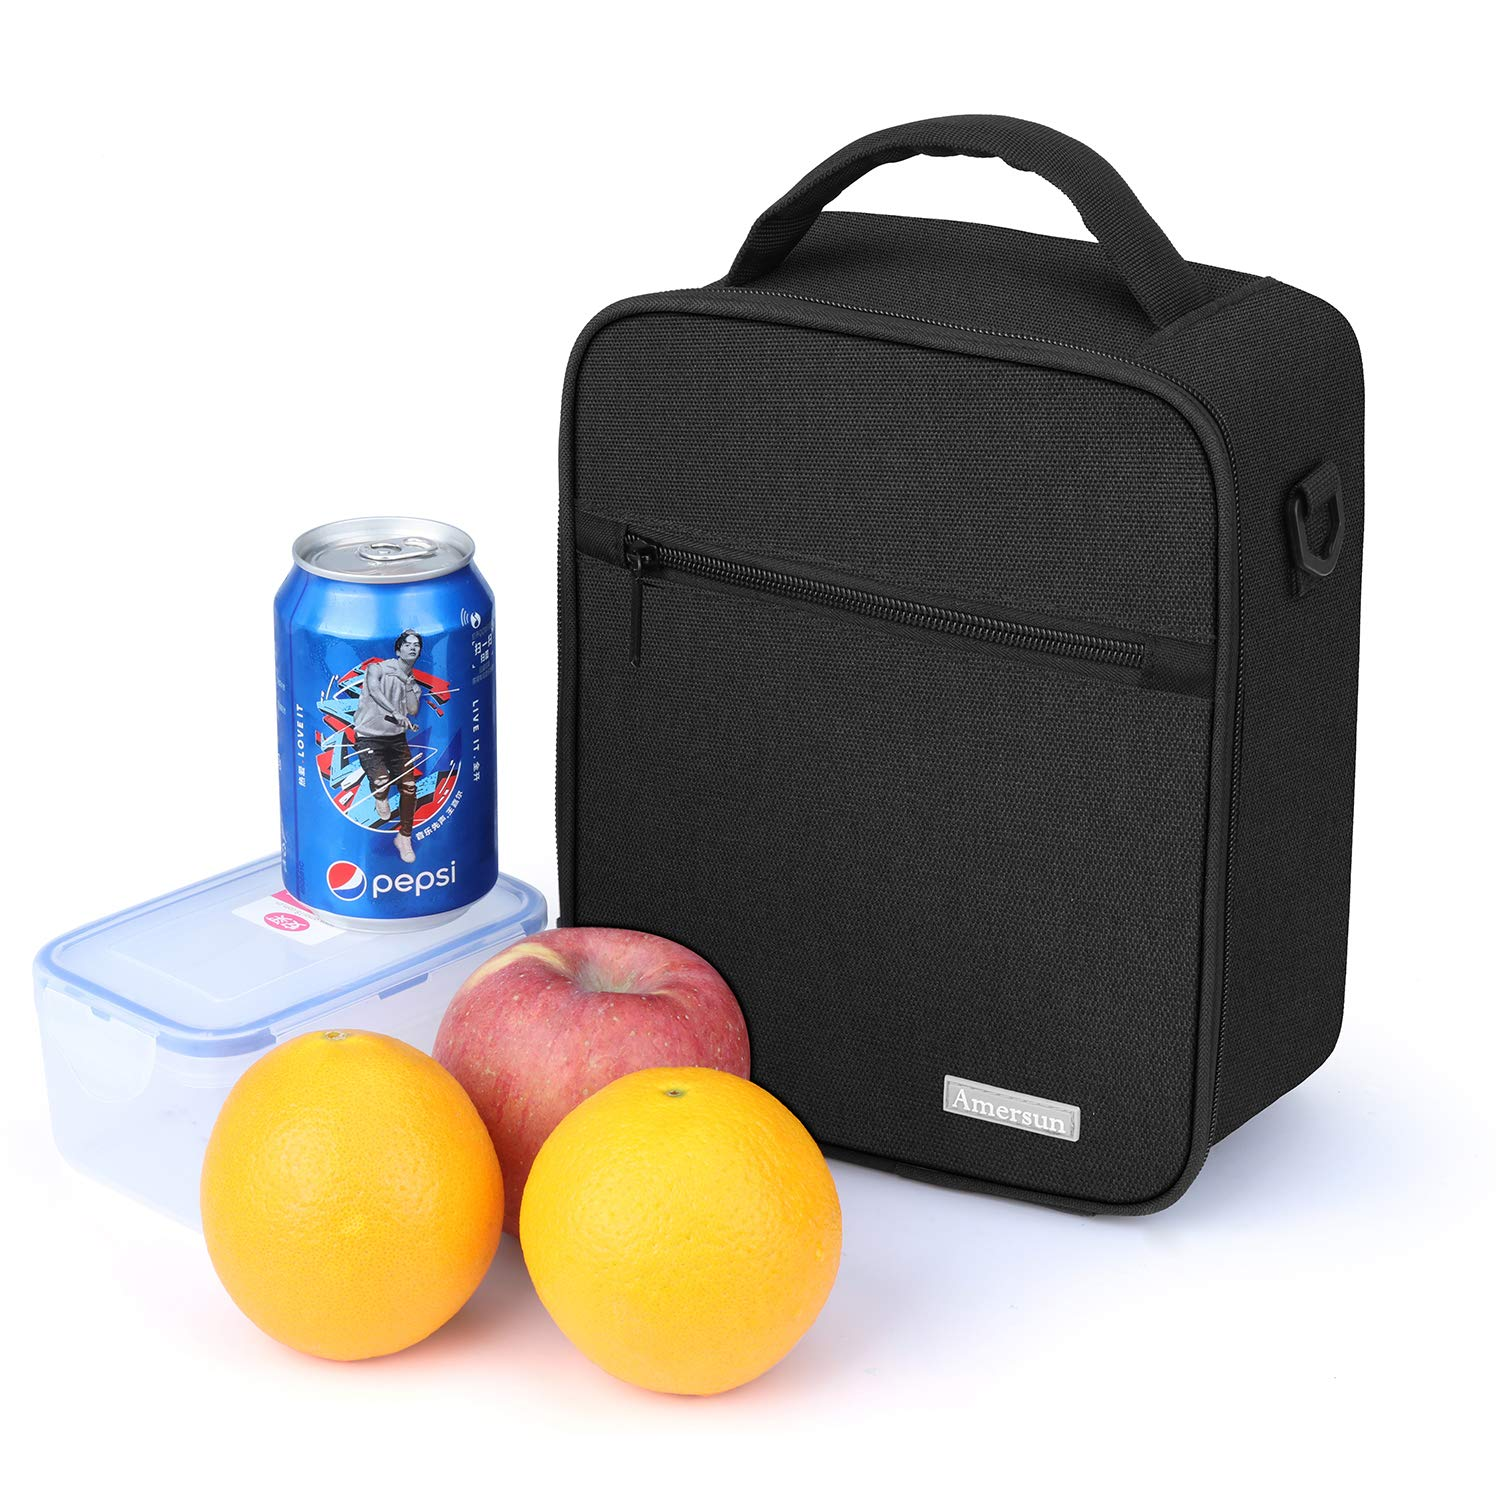 Lunch Bag with Firm Foil-BPA FREE, Amersun Original Reusable Insulated Lunch Box School Cooler Picnic Holder with Shoulder Strap for Kids Boys Men Women Girls,Spill-resistant & 2 Pockets (Black) by Amersun (Image #5)